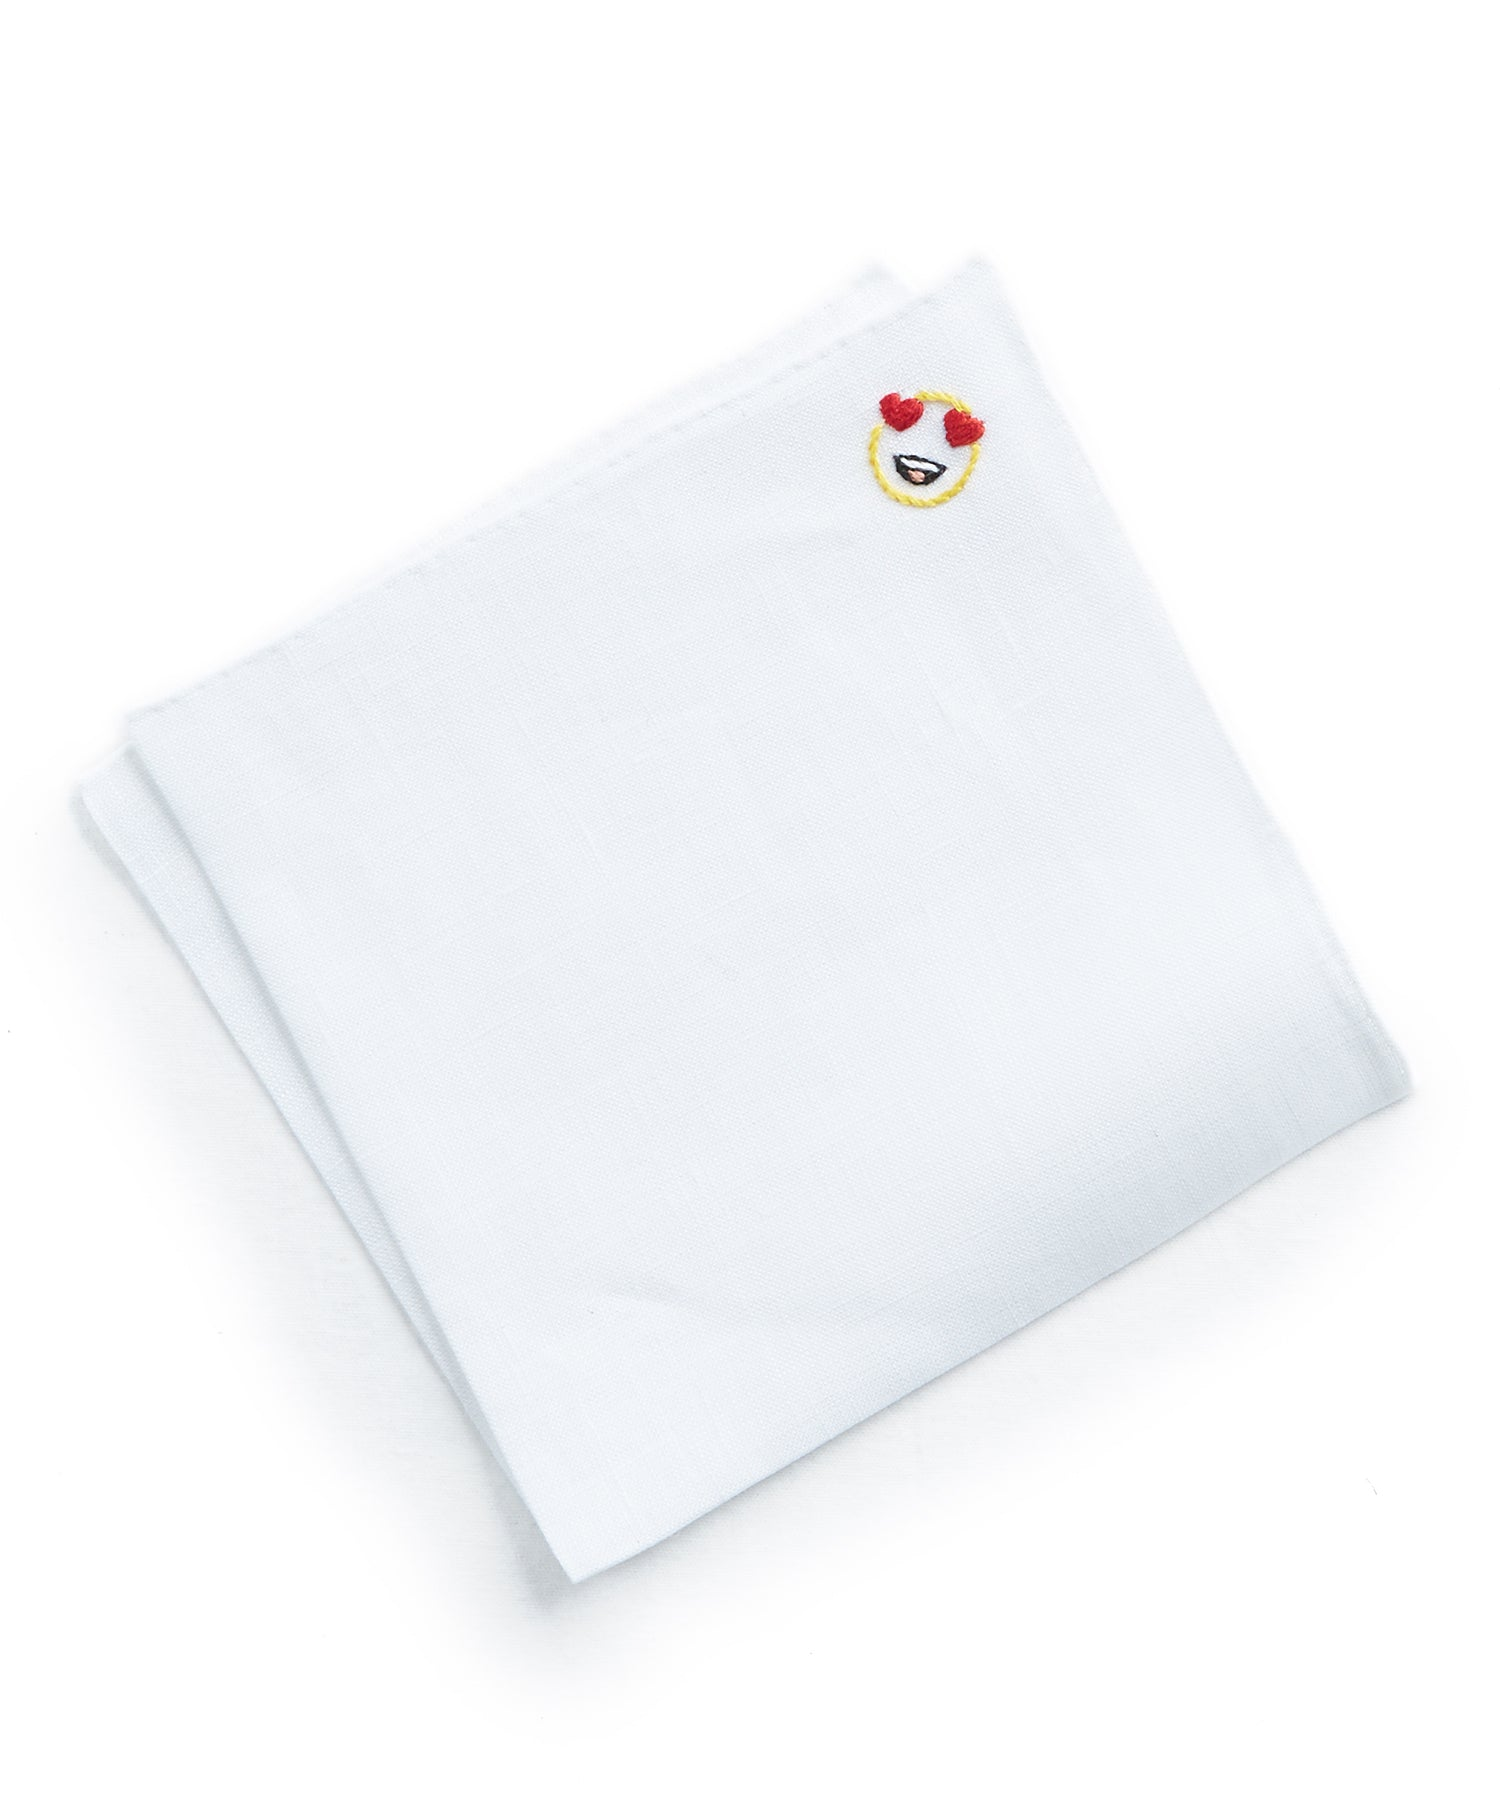 Handmade Italian Linen Pocket Square with Heart Eyes Emoji